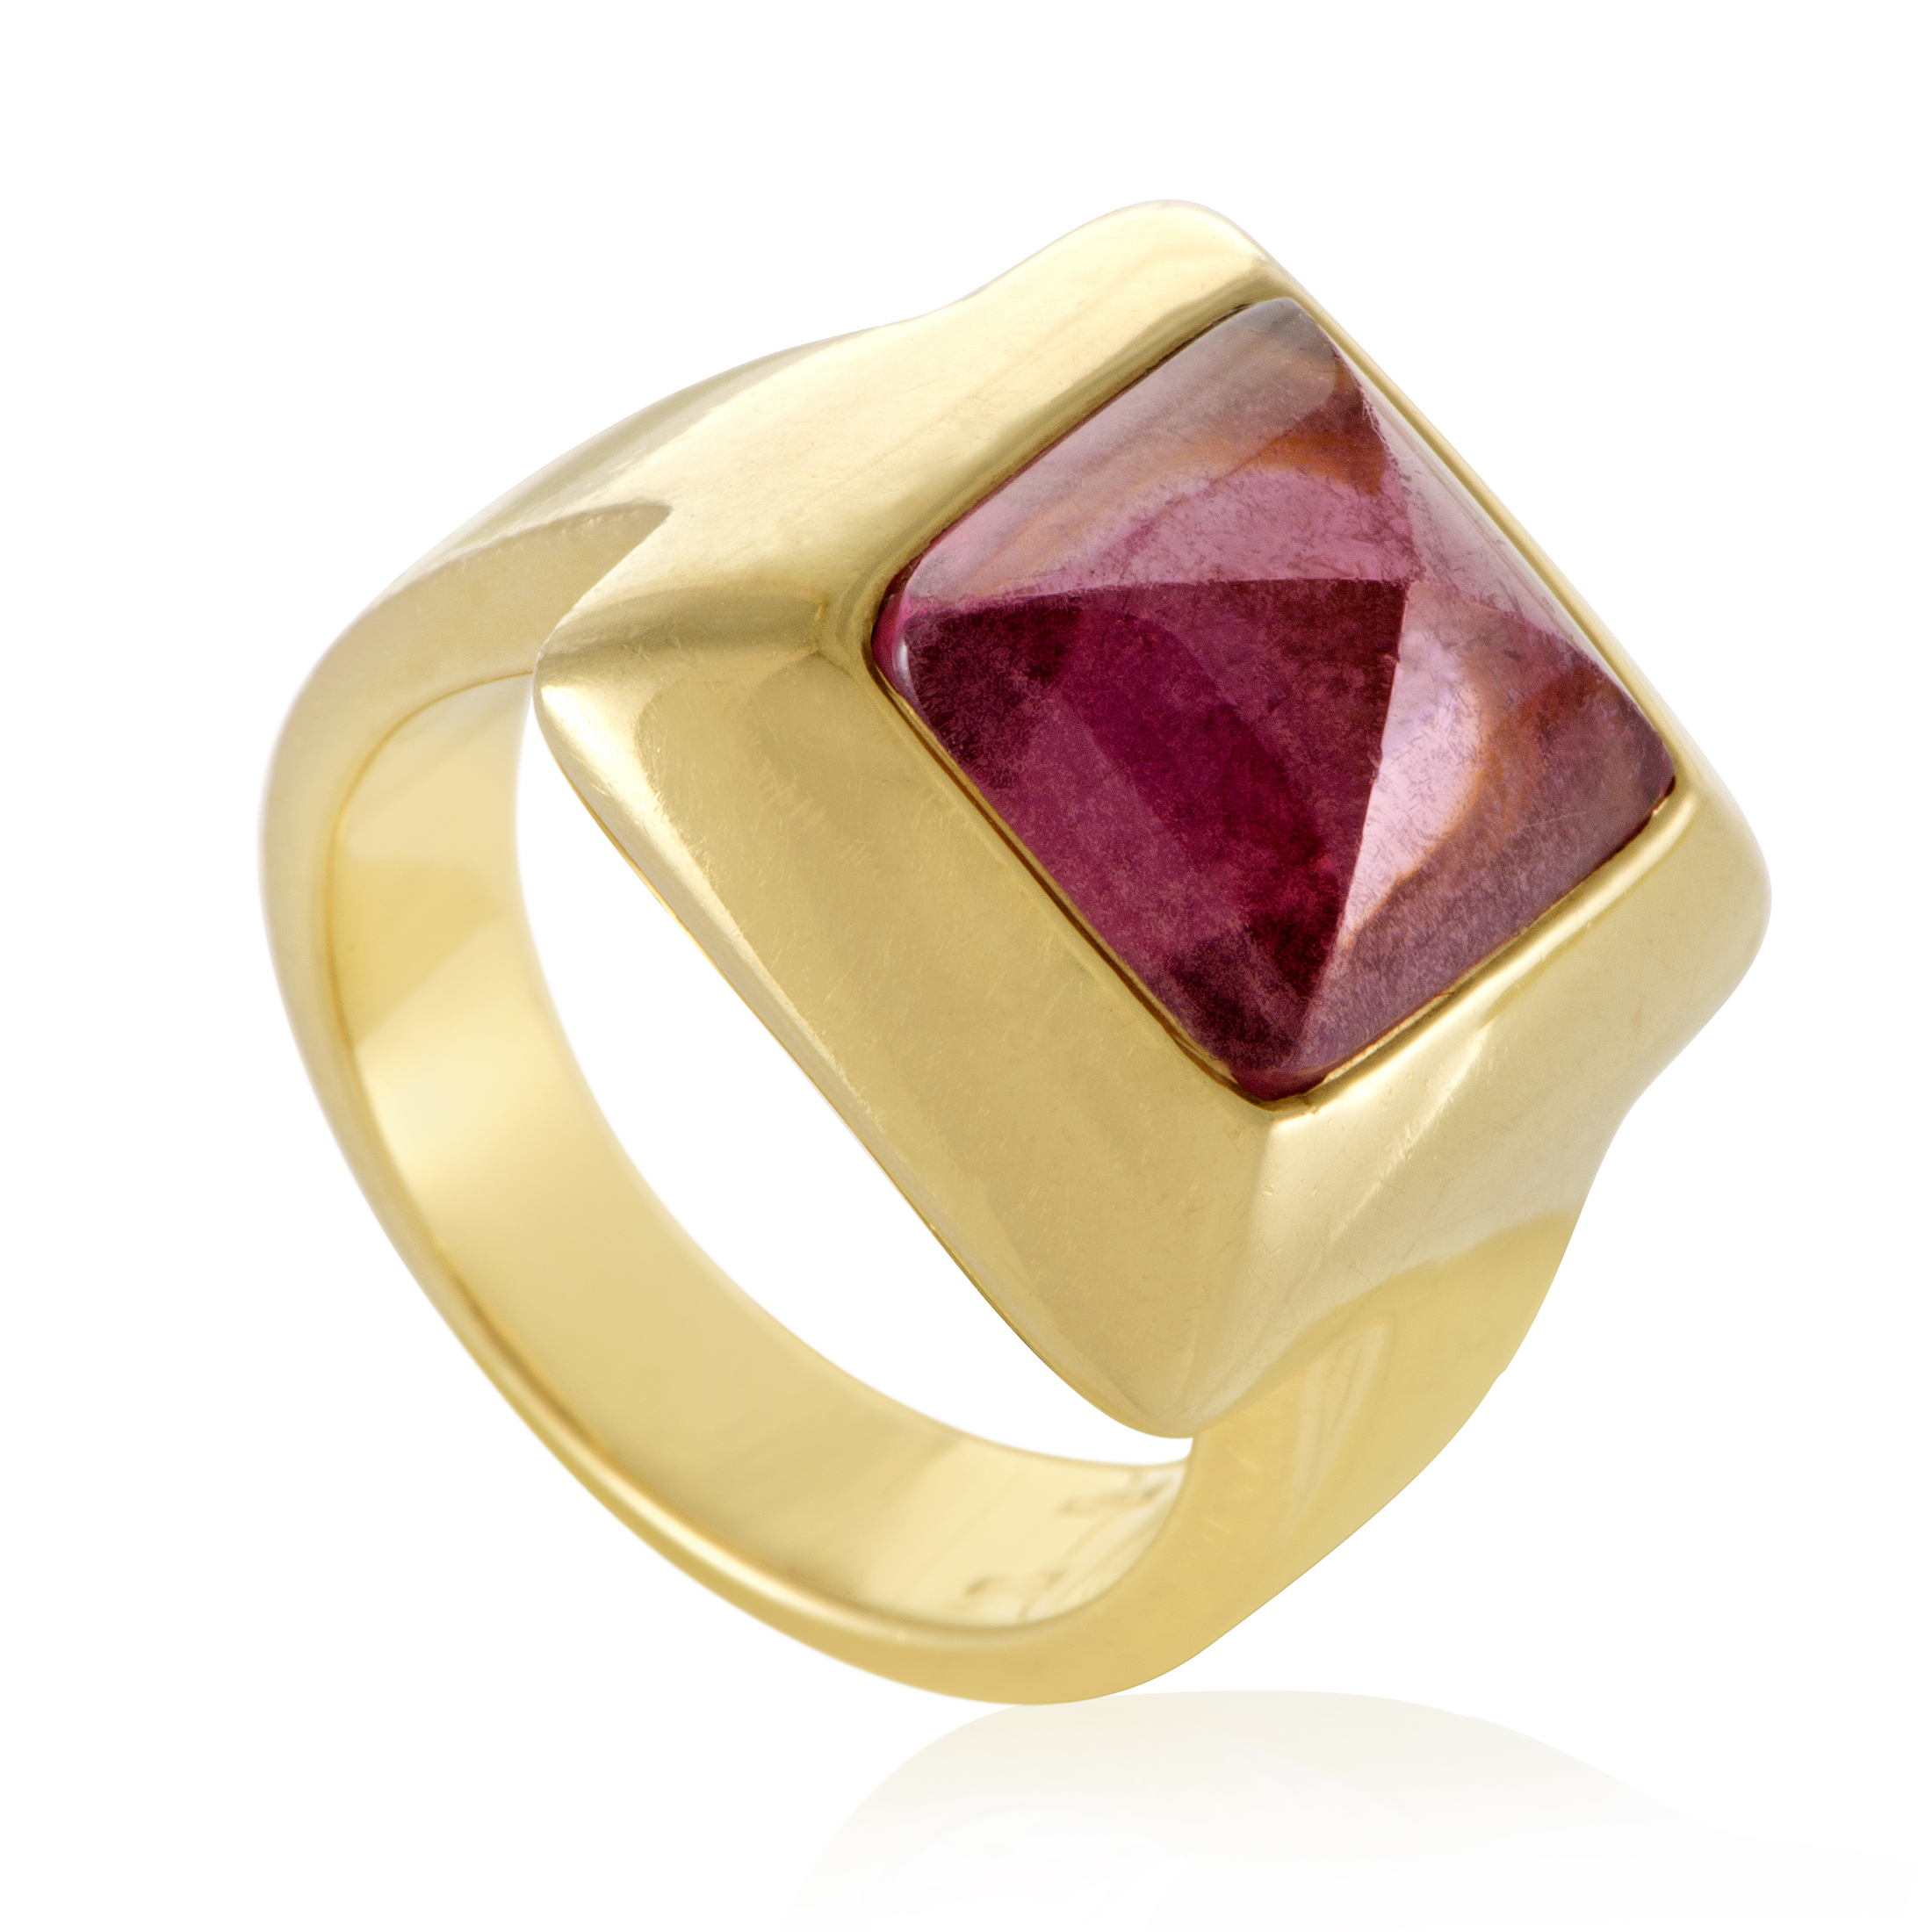 """""Pomellato 18K Yellow Gold & Pink Tourmaline Pyramid Ring Size 6.5"""""" 1405529"